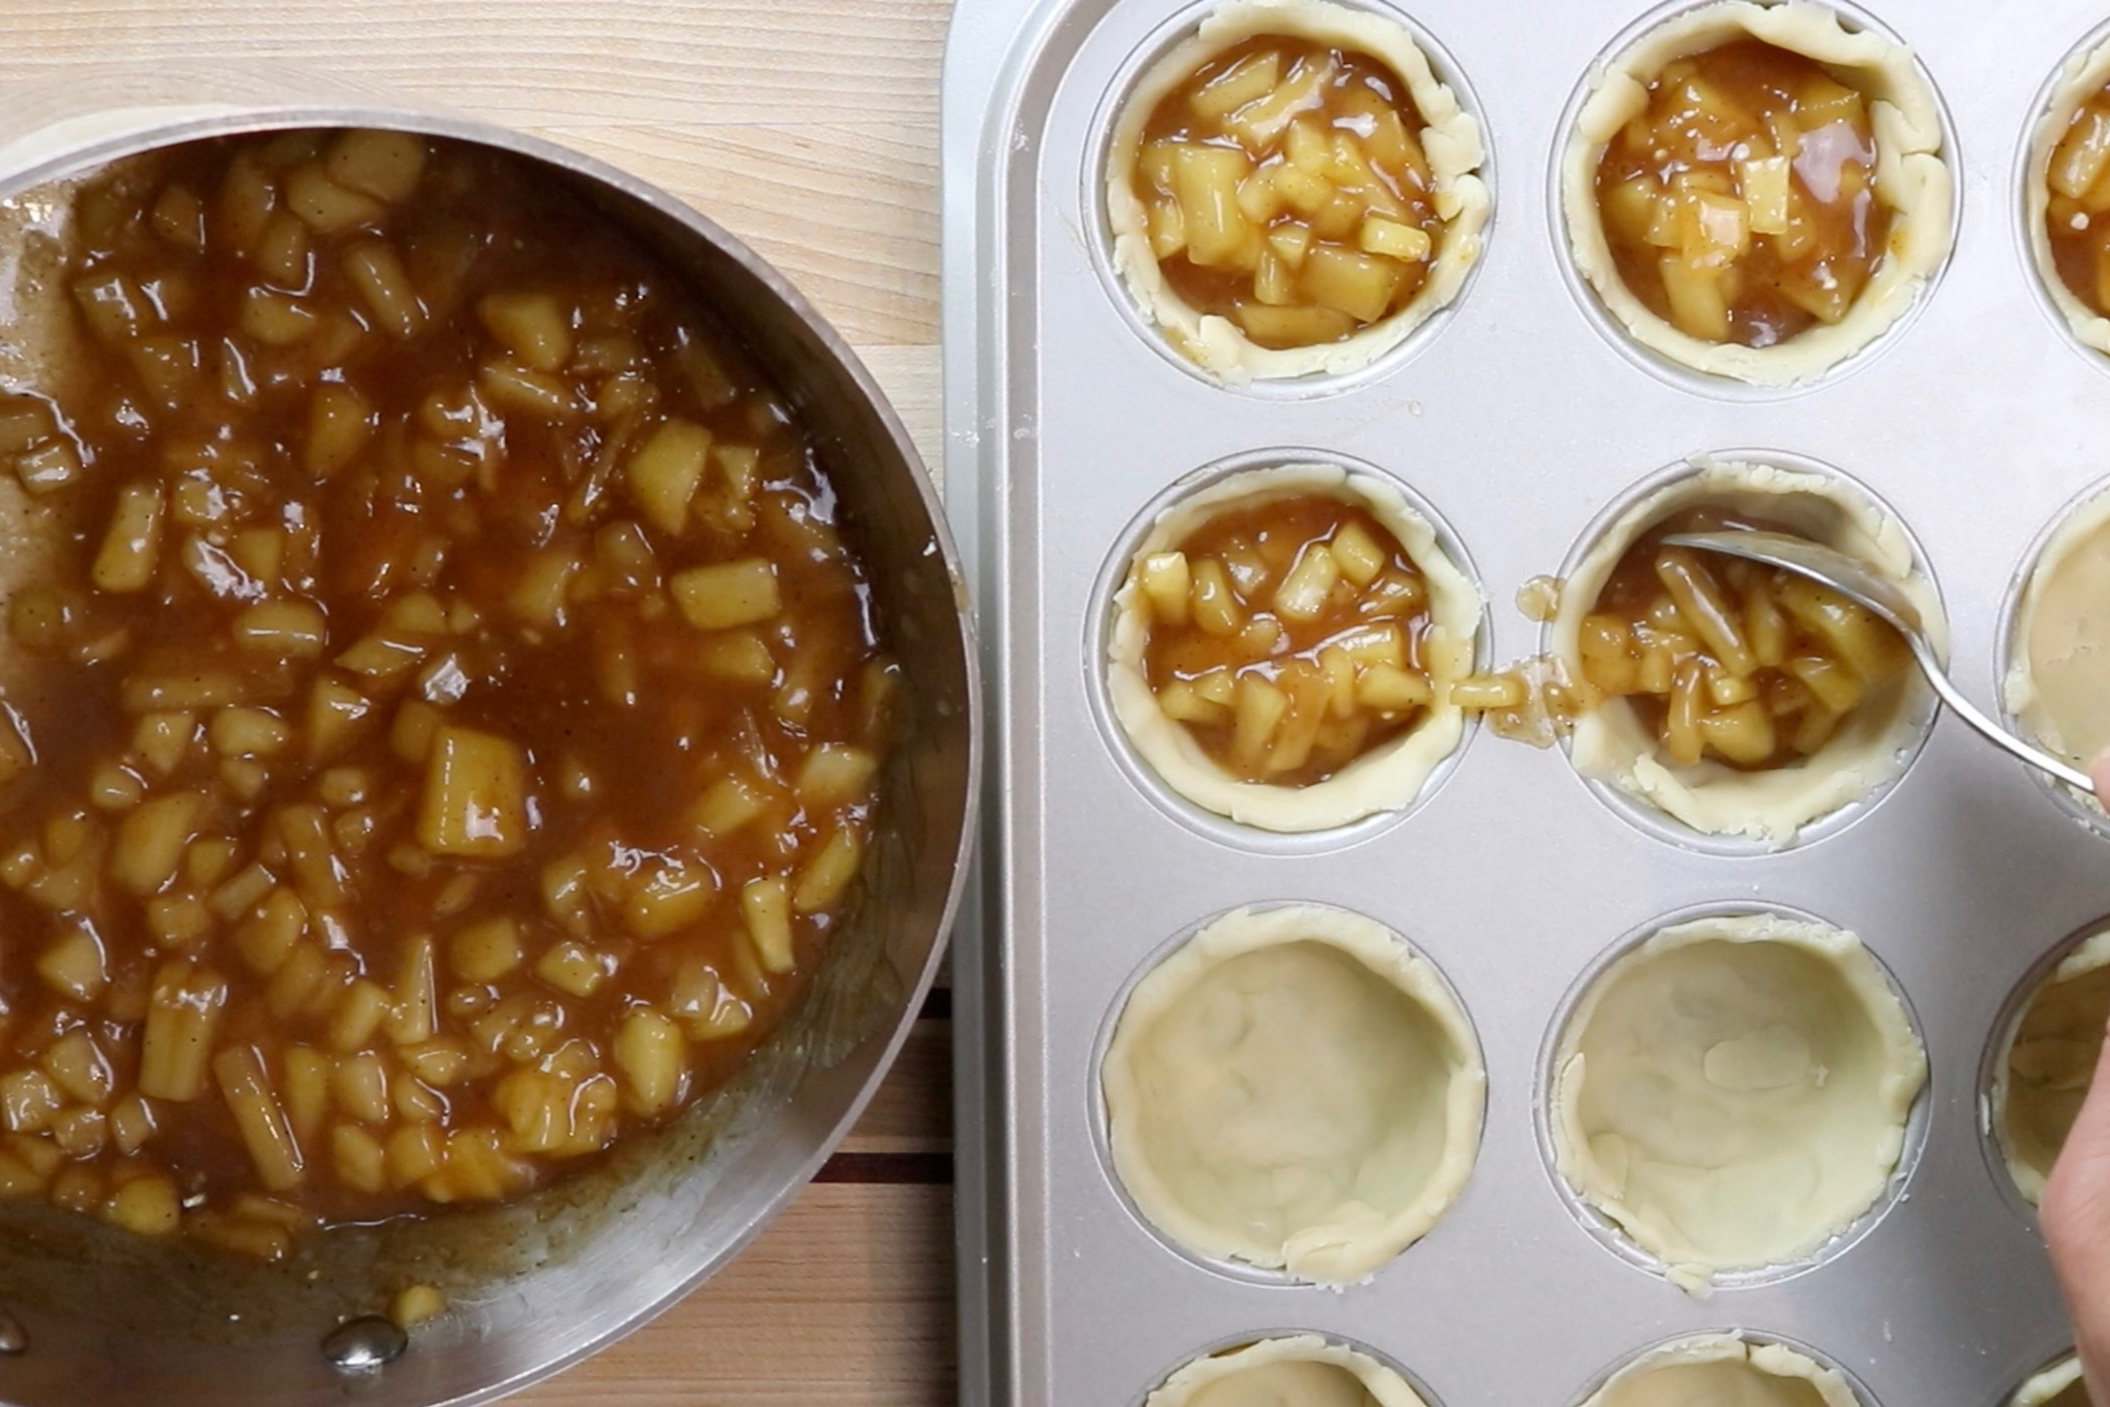 10. Fill each cup with apple filling about 3/4 of the way to the top. -